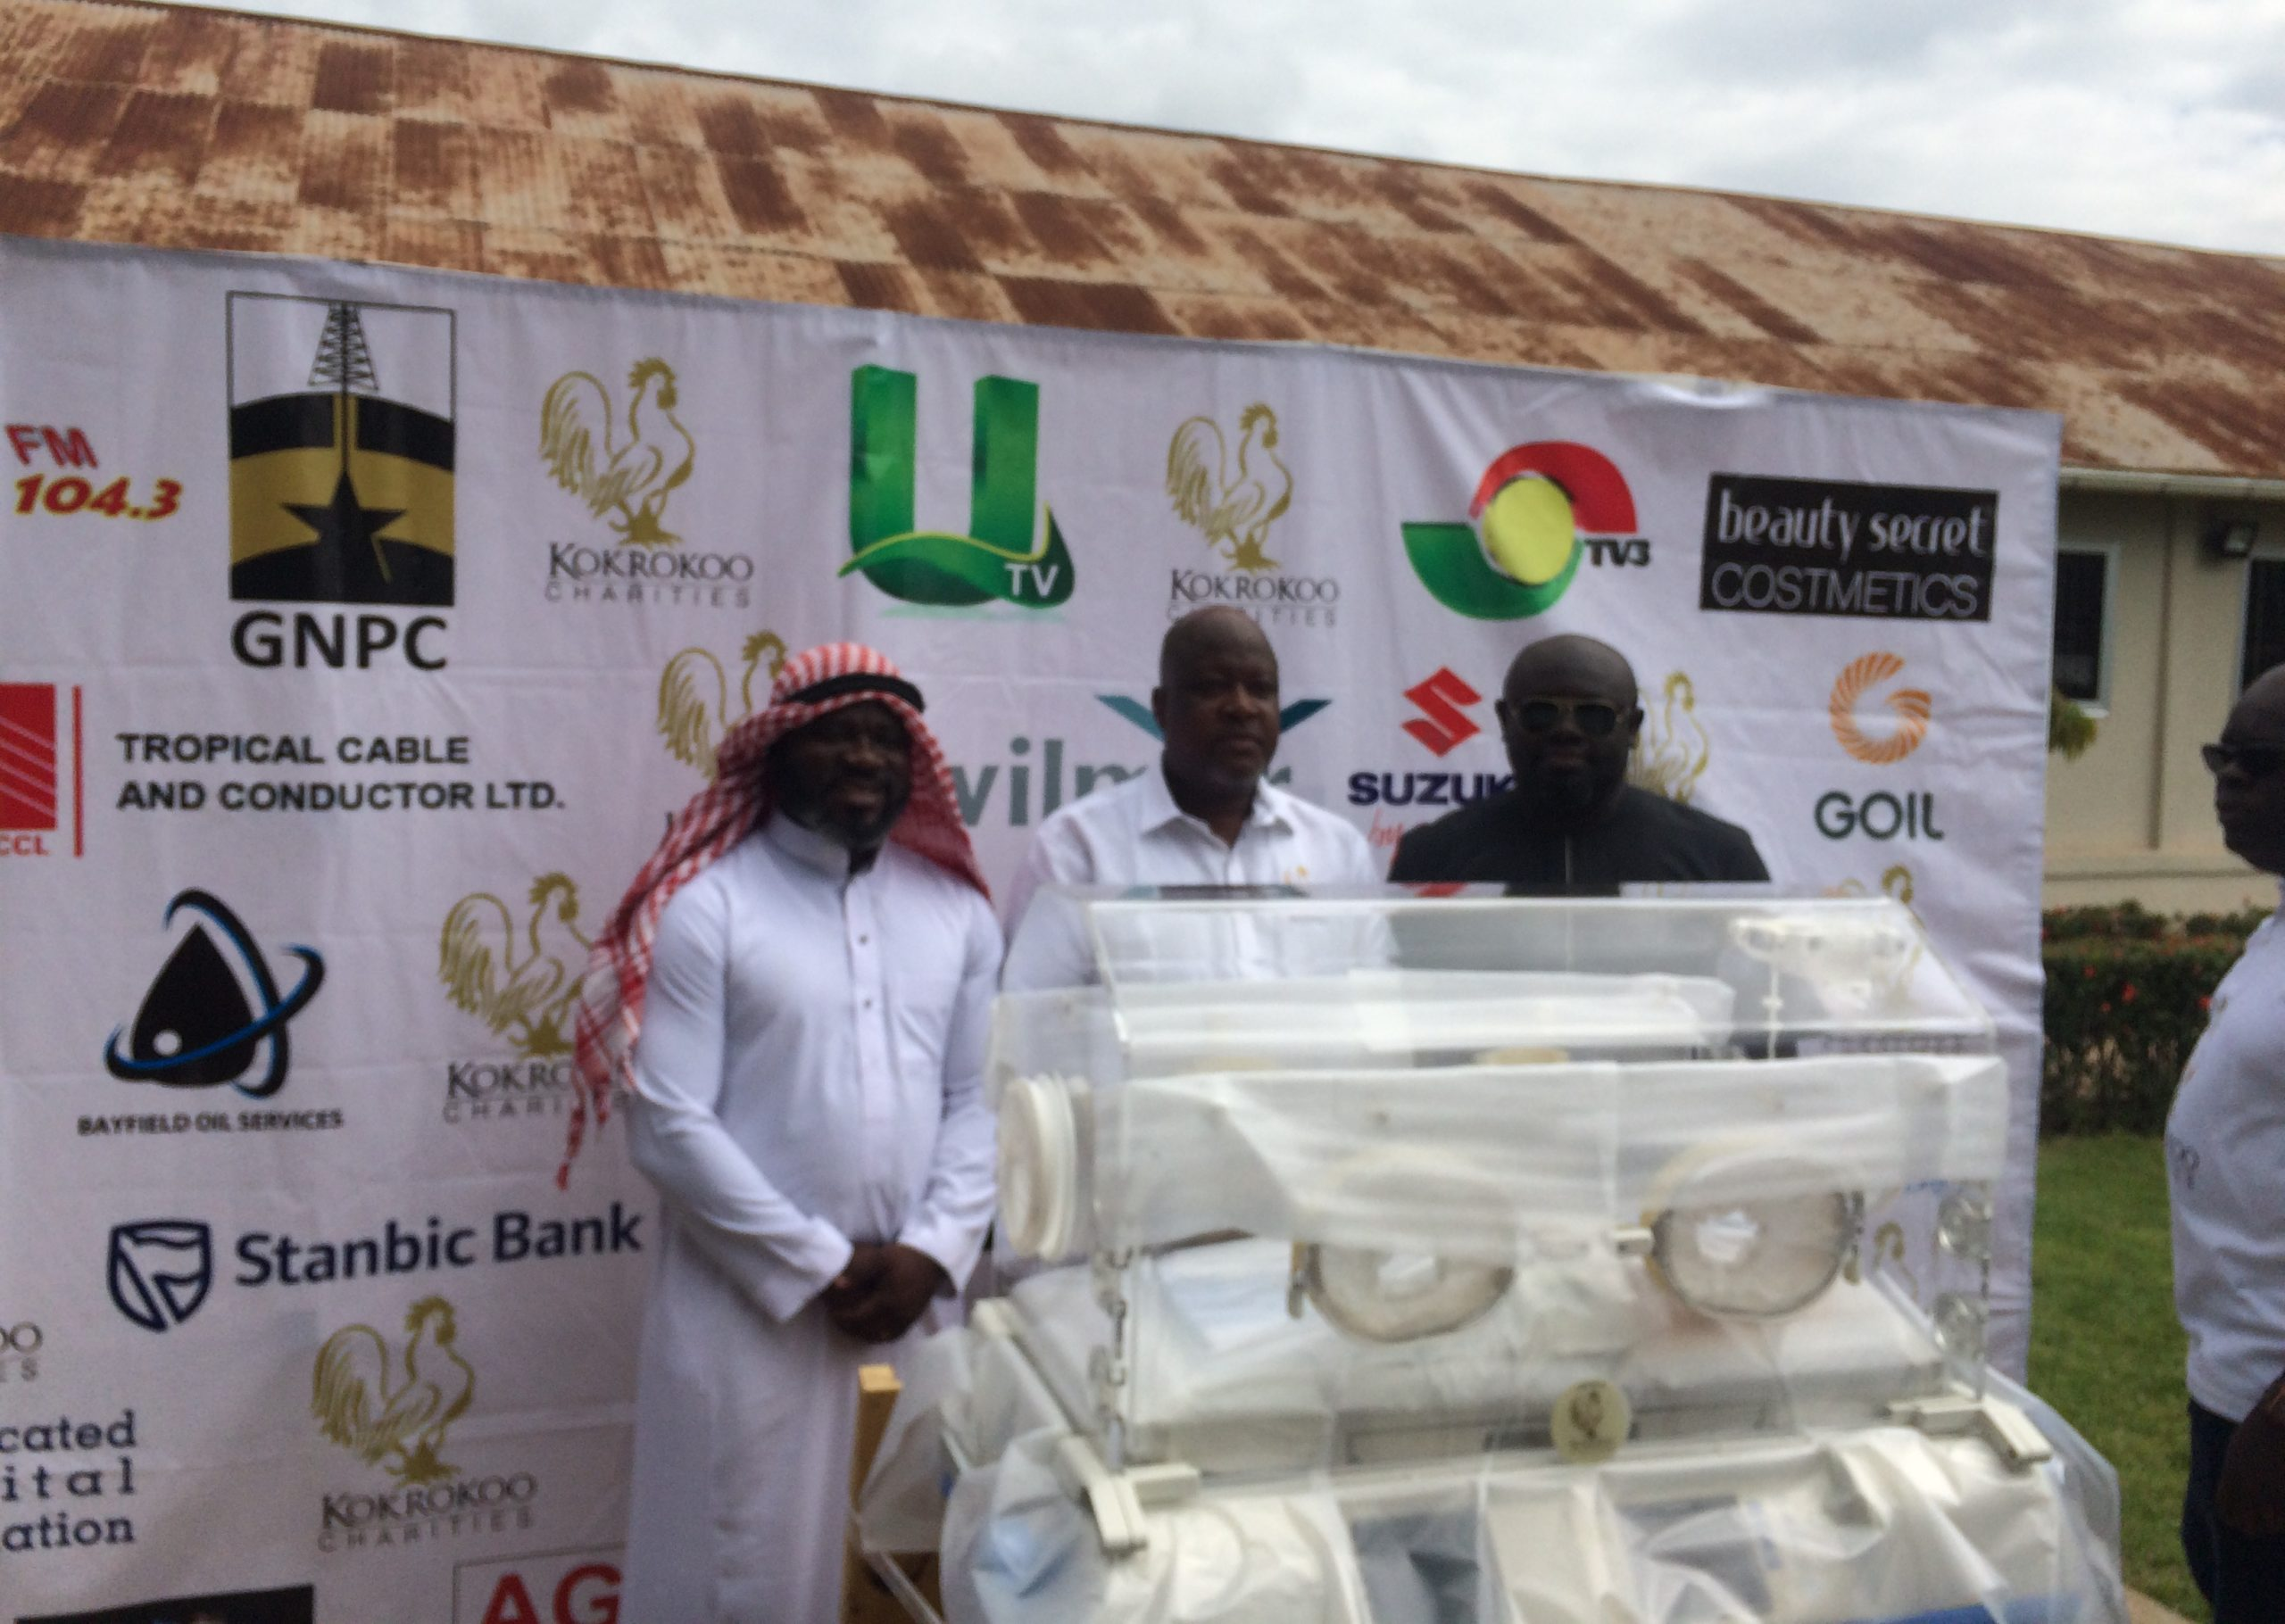 KOKROKOO CHARITIES DONATES TWO (2) INCUBATORS TO PRESBYTERIAN HOSPITAL, AGOGO